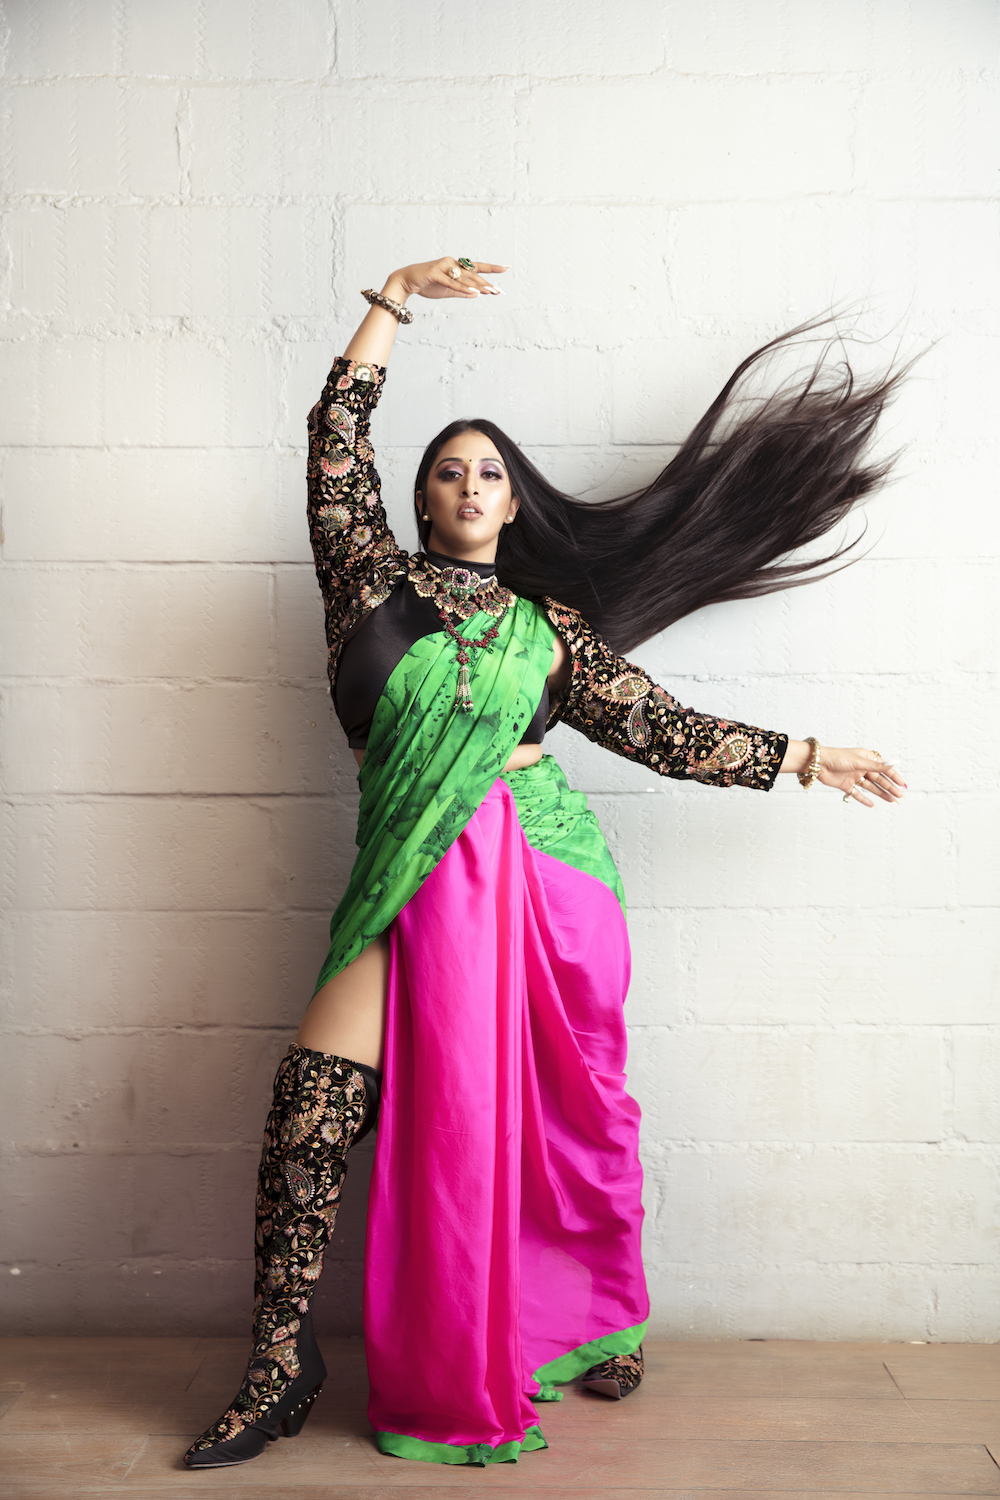 Musician, Raja Kumari (Image provided by Raja Kumari)